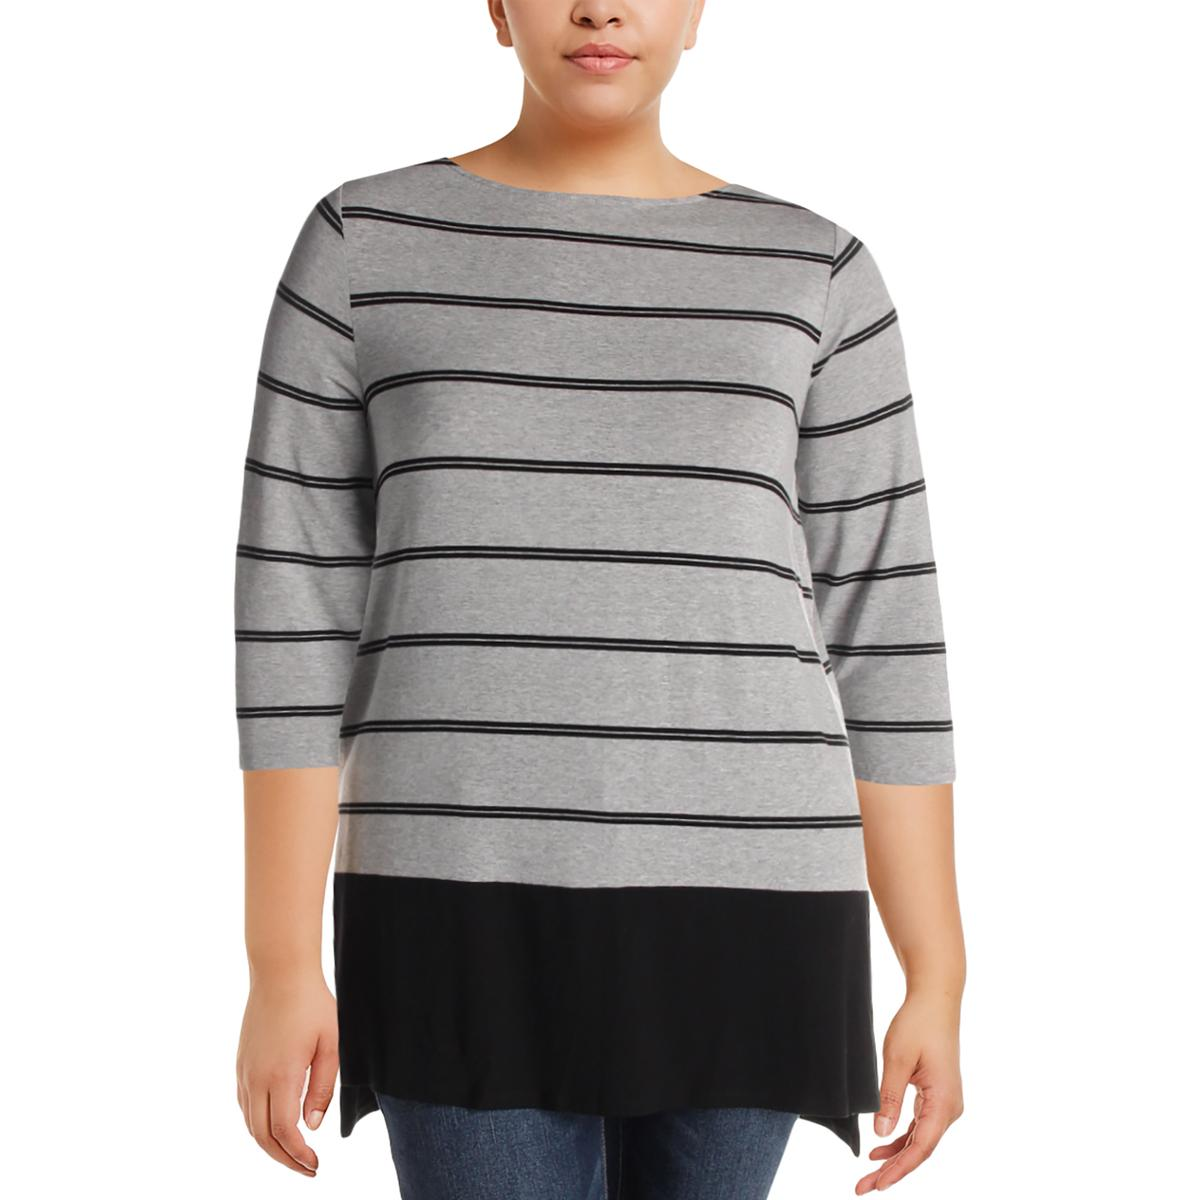 Vince-Camuto-Womens-Striped-3-4-Sleeves-Boatneck-Tunic-Top-Shirt-Plus-BHFO-6857